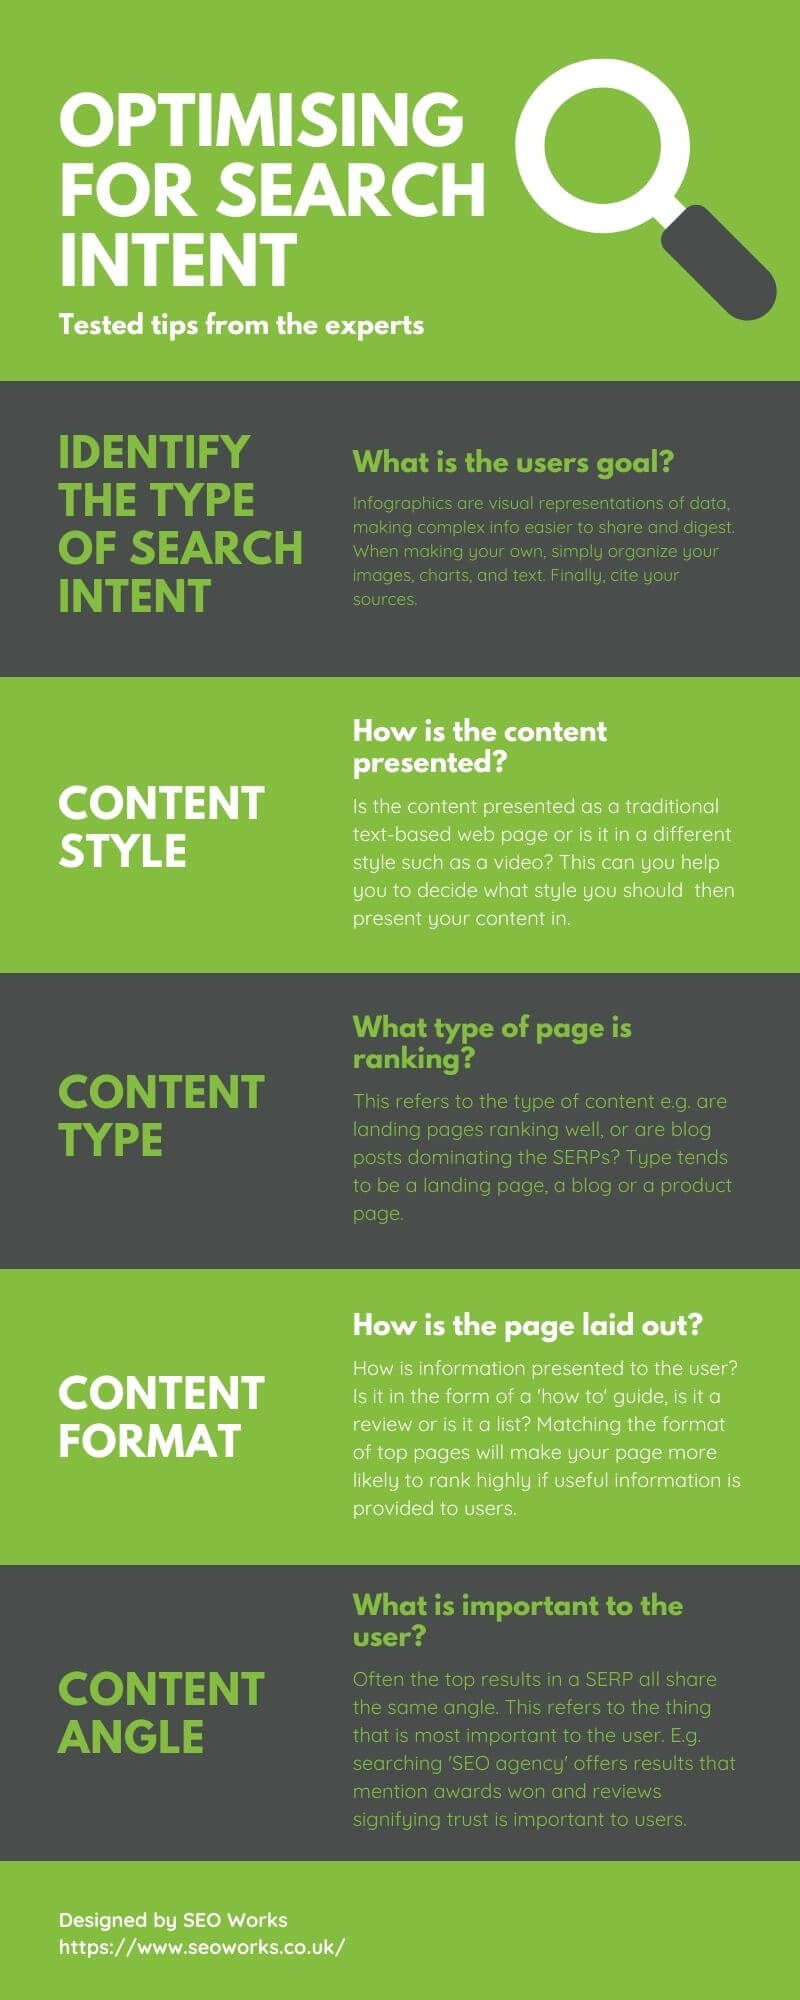 How to optimise for search intent infographic